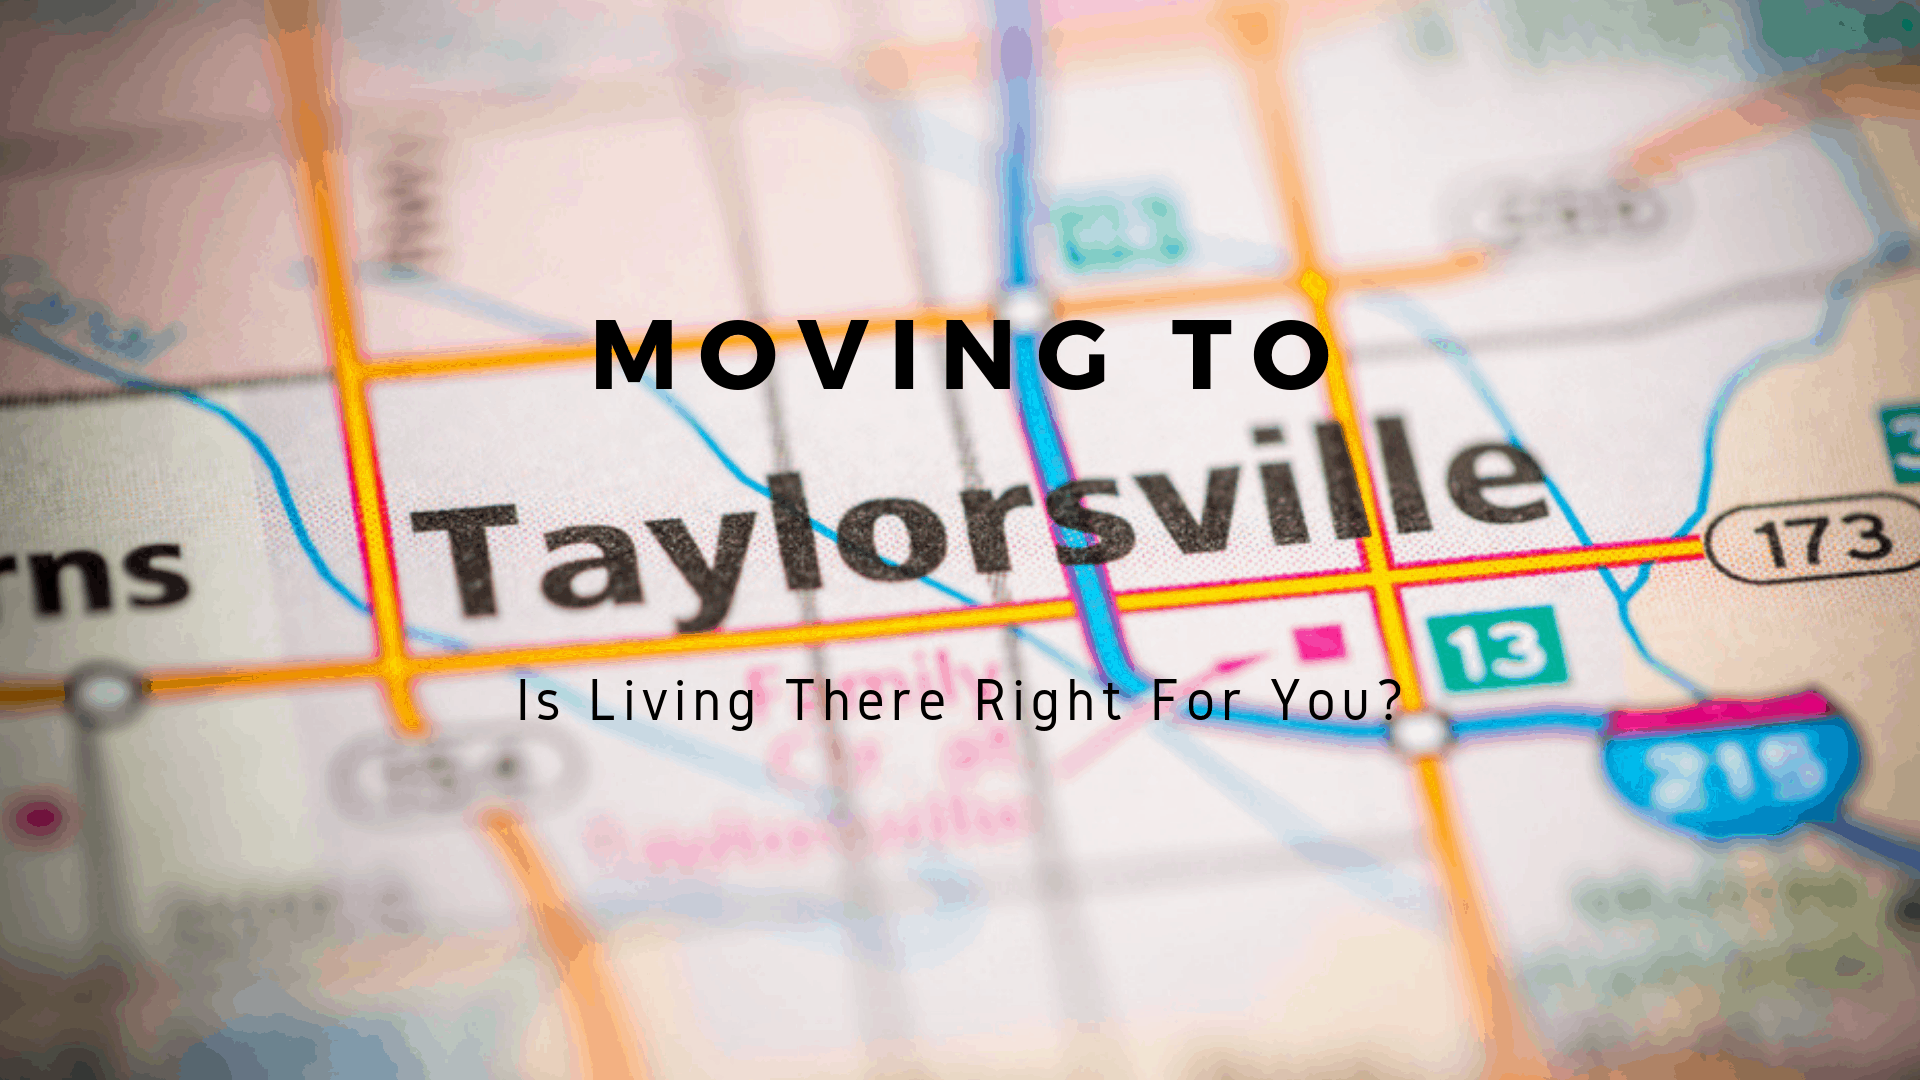 Moving to Taylorsville, UT - Is Living There Right For You?